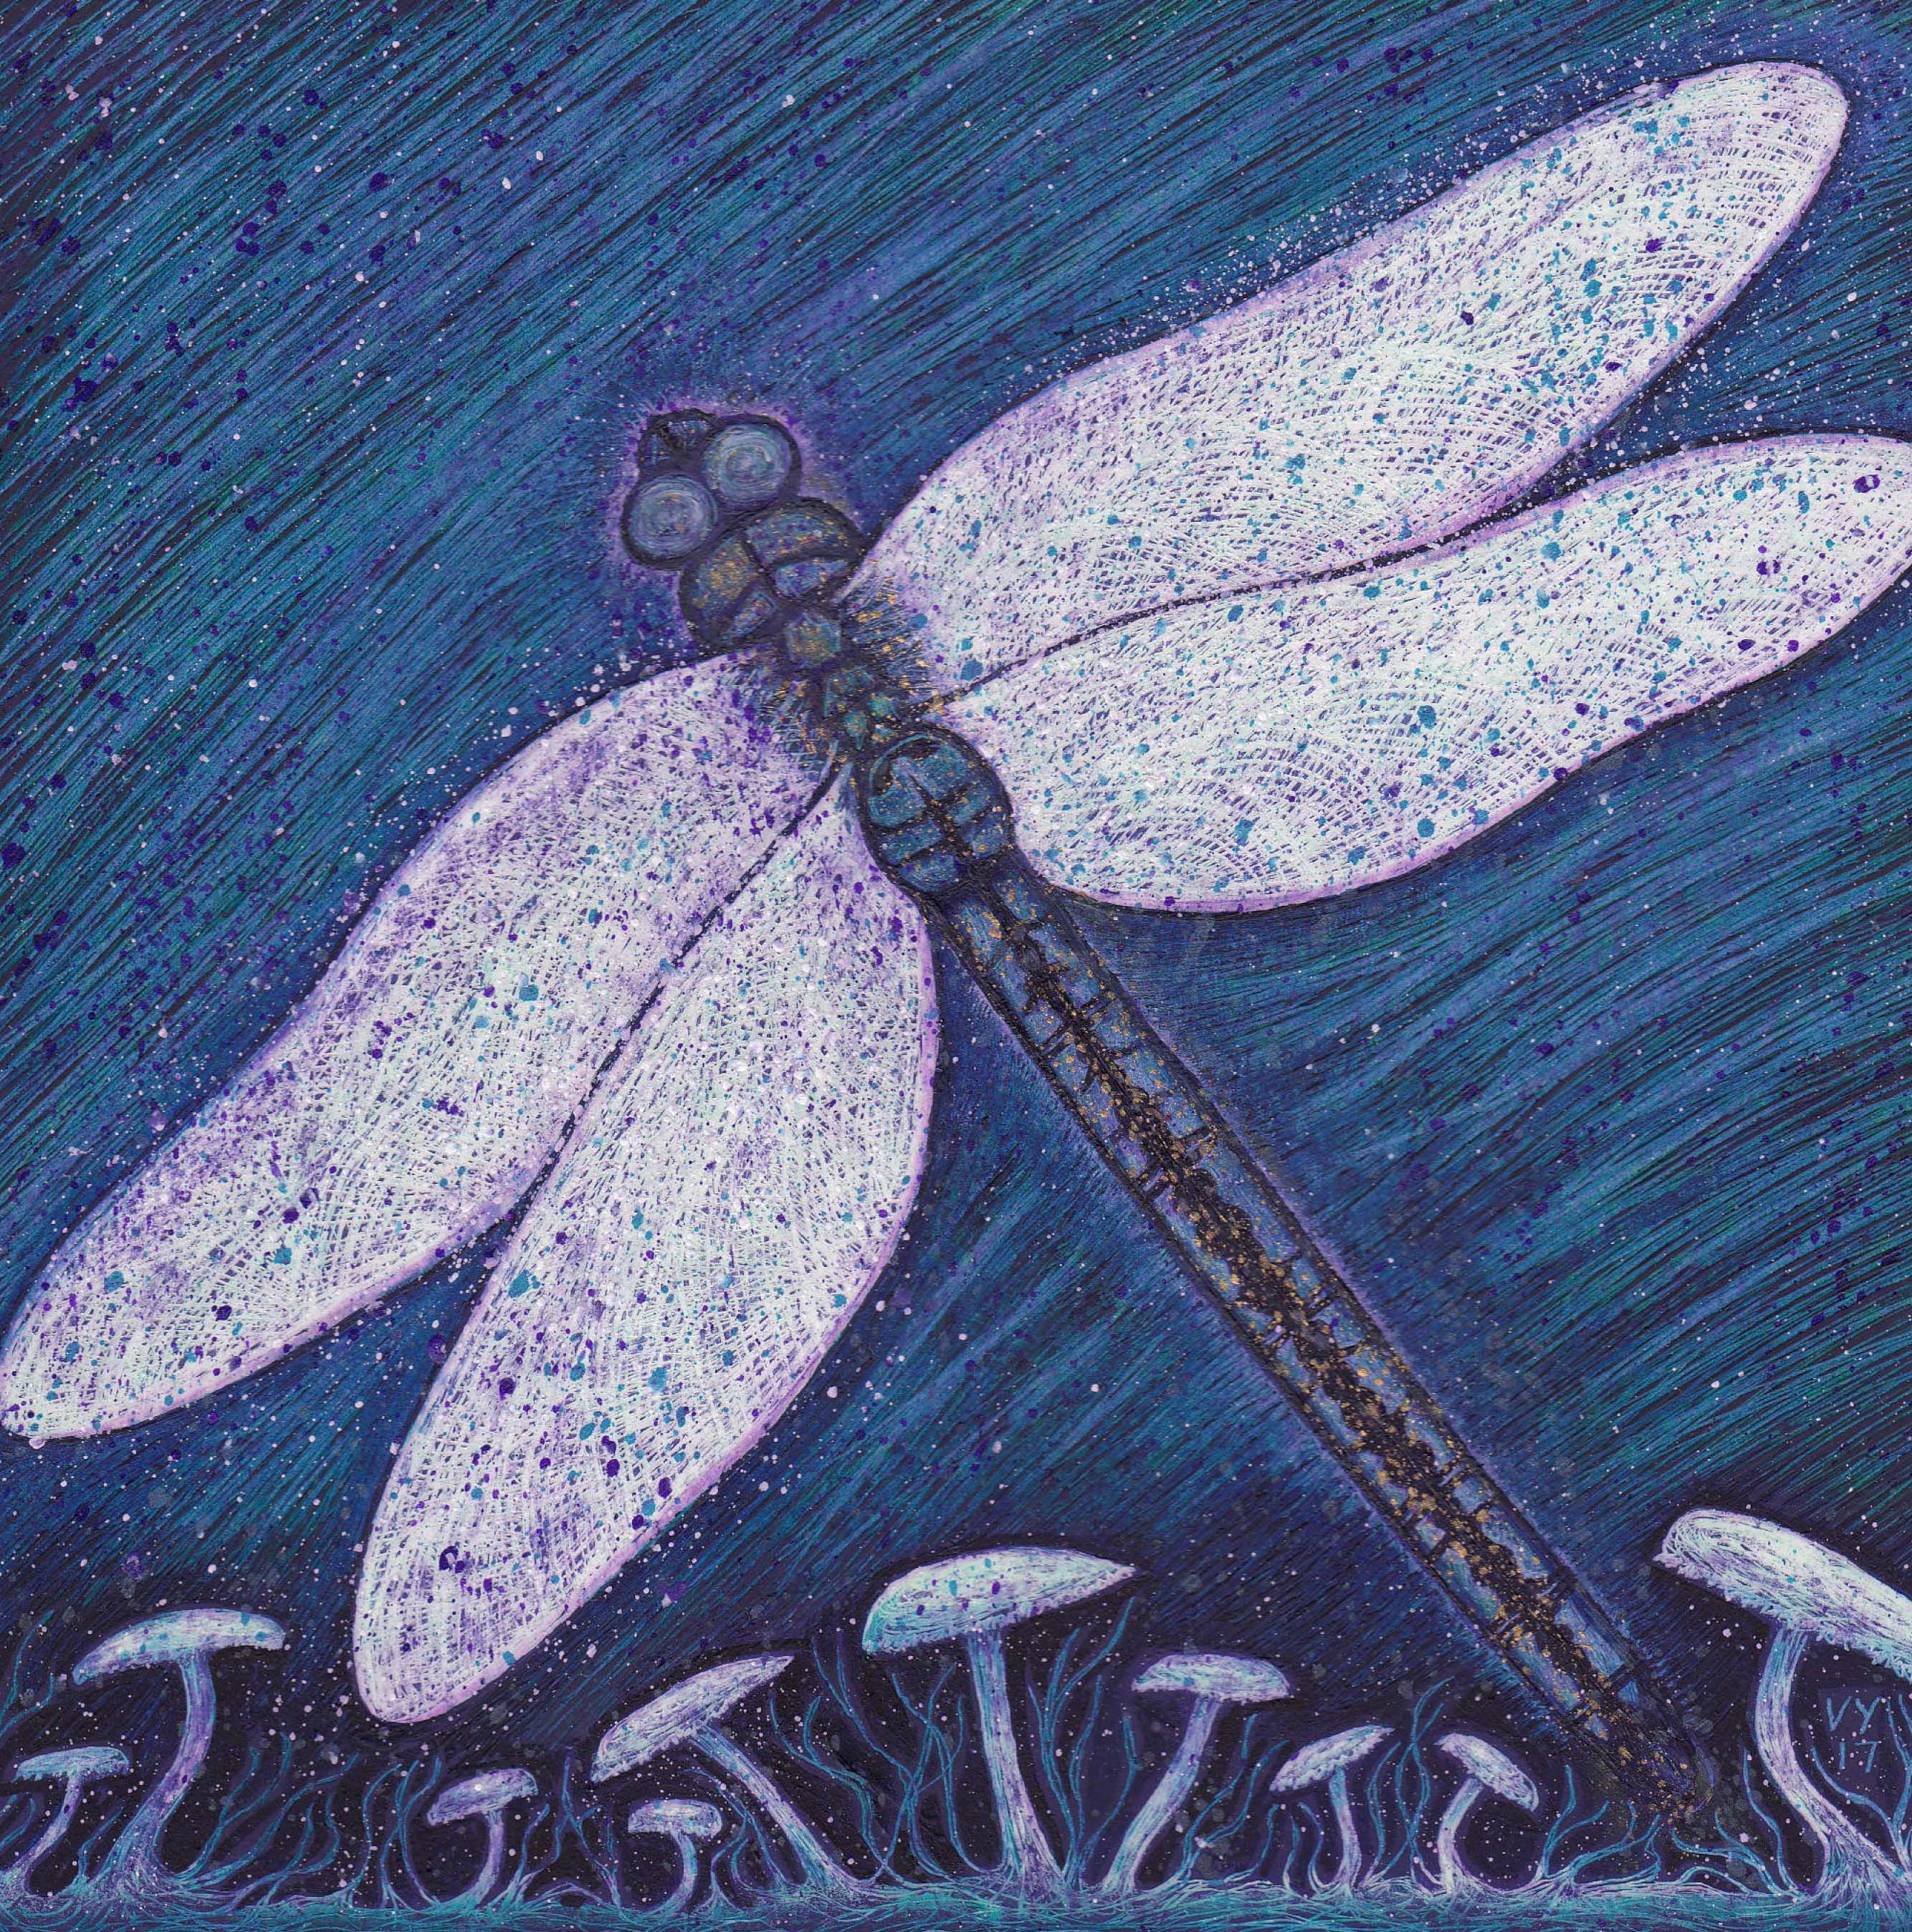 Ode to the Dragonfly